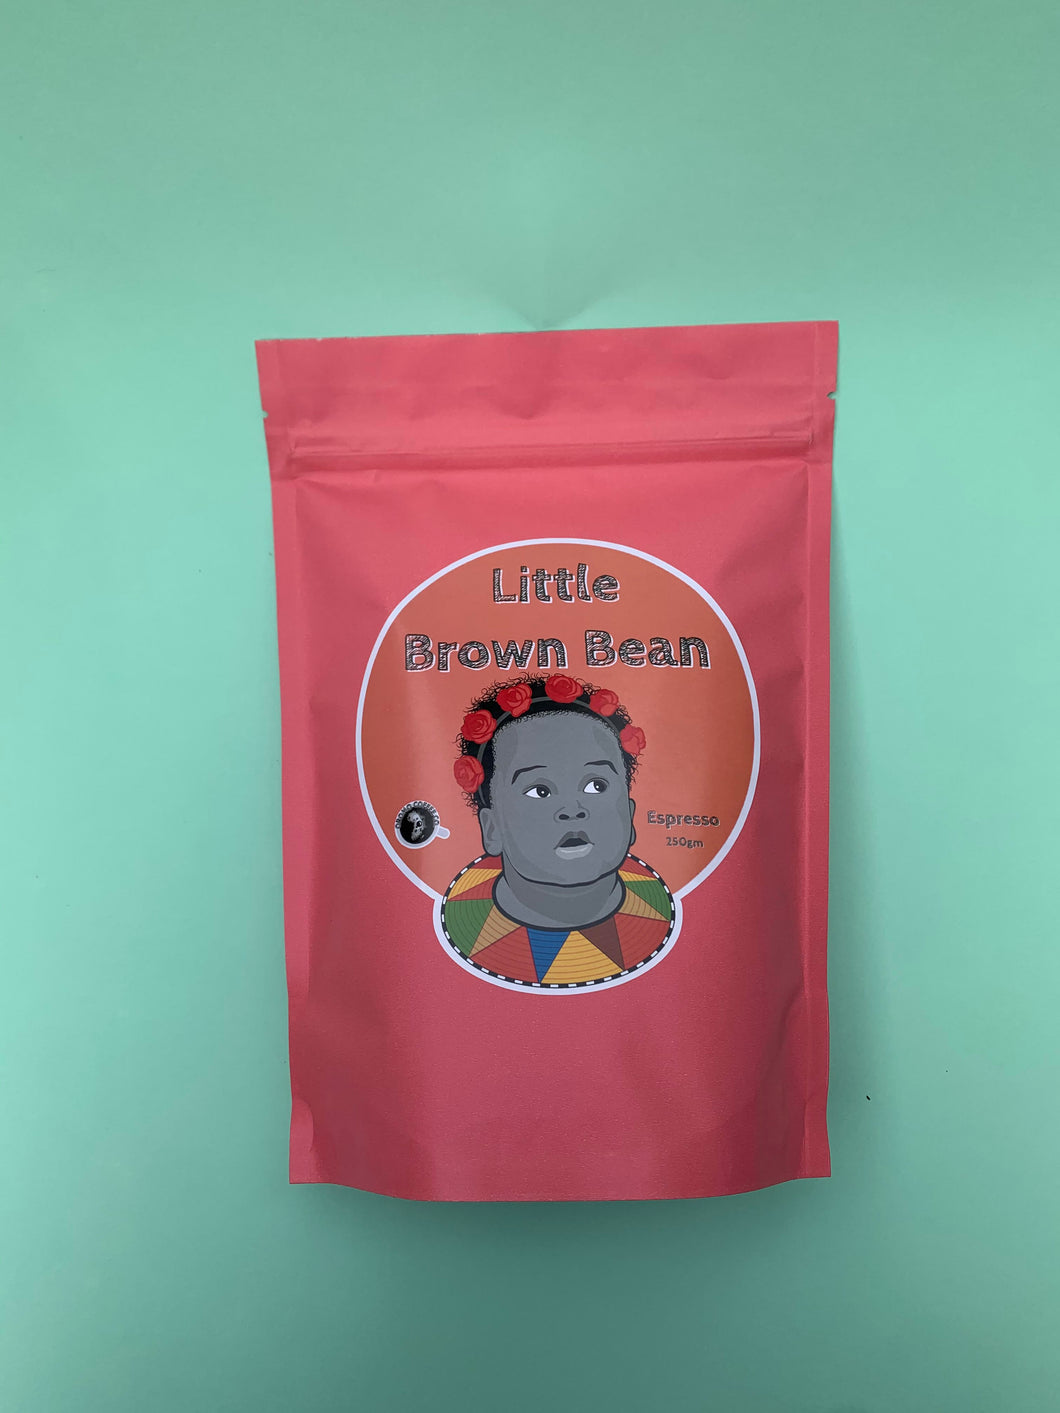 Little Brown Bean (Espresso)